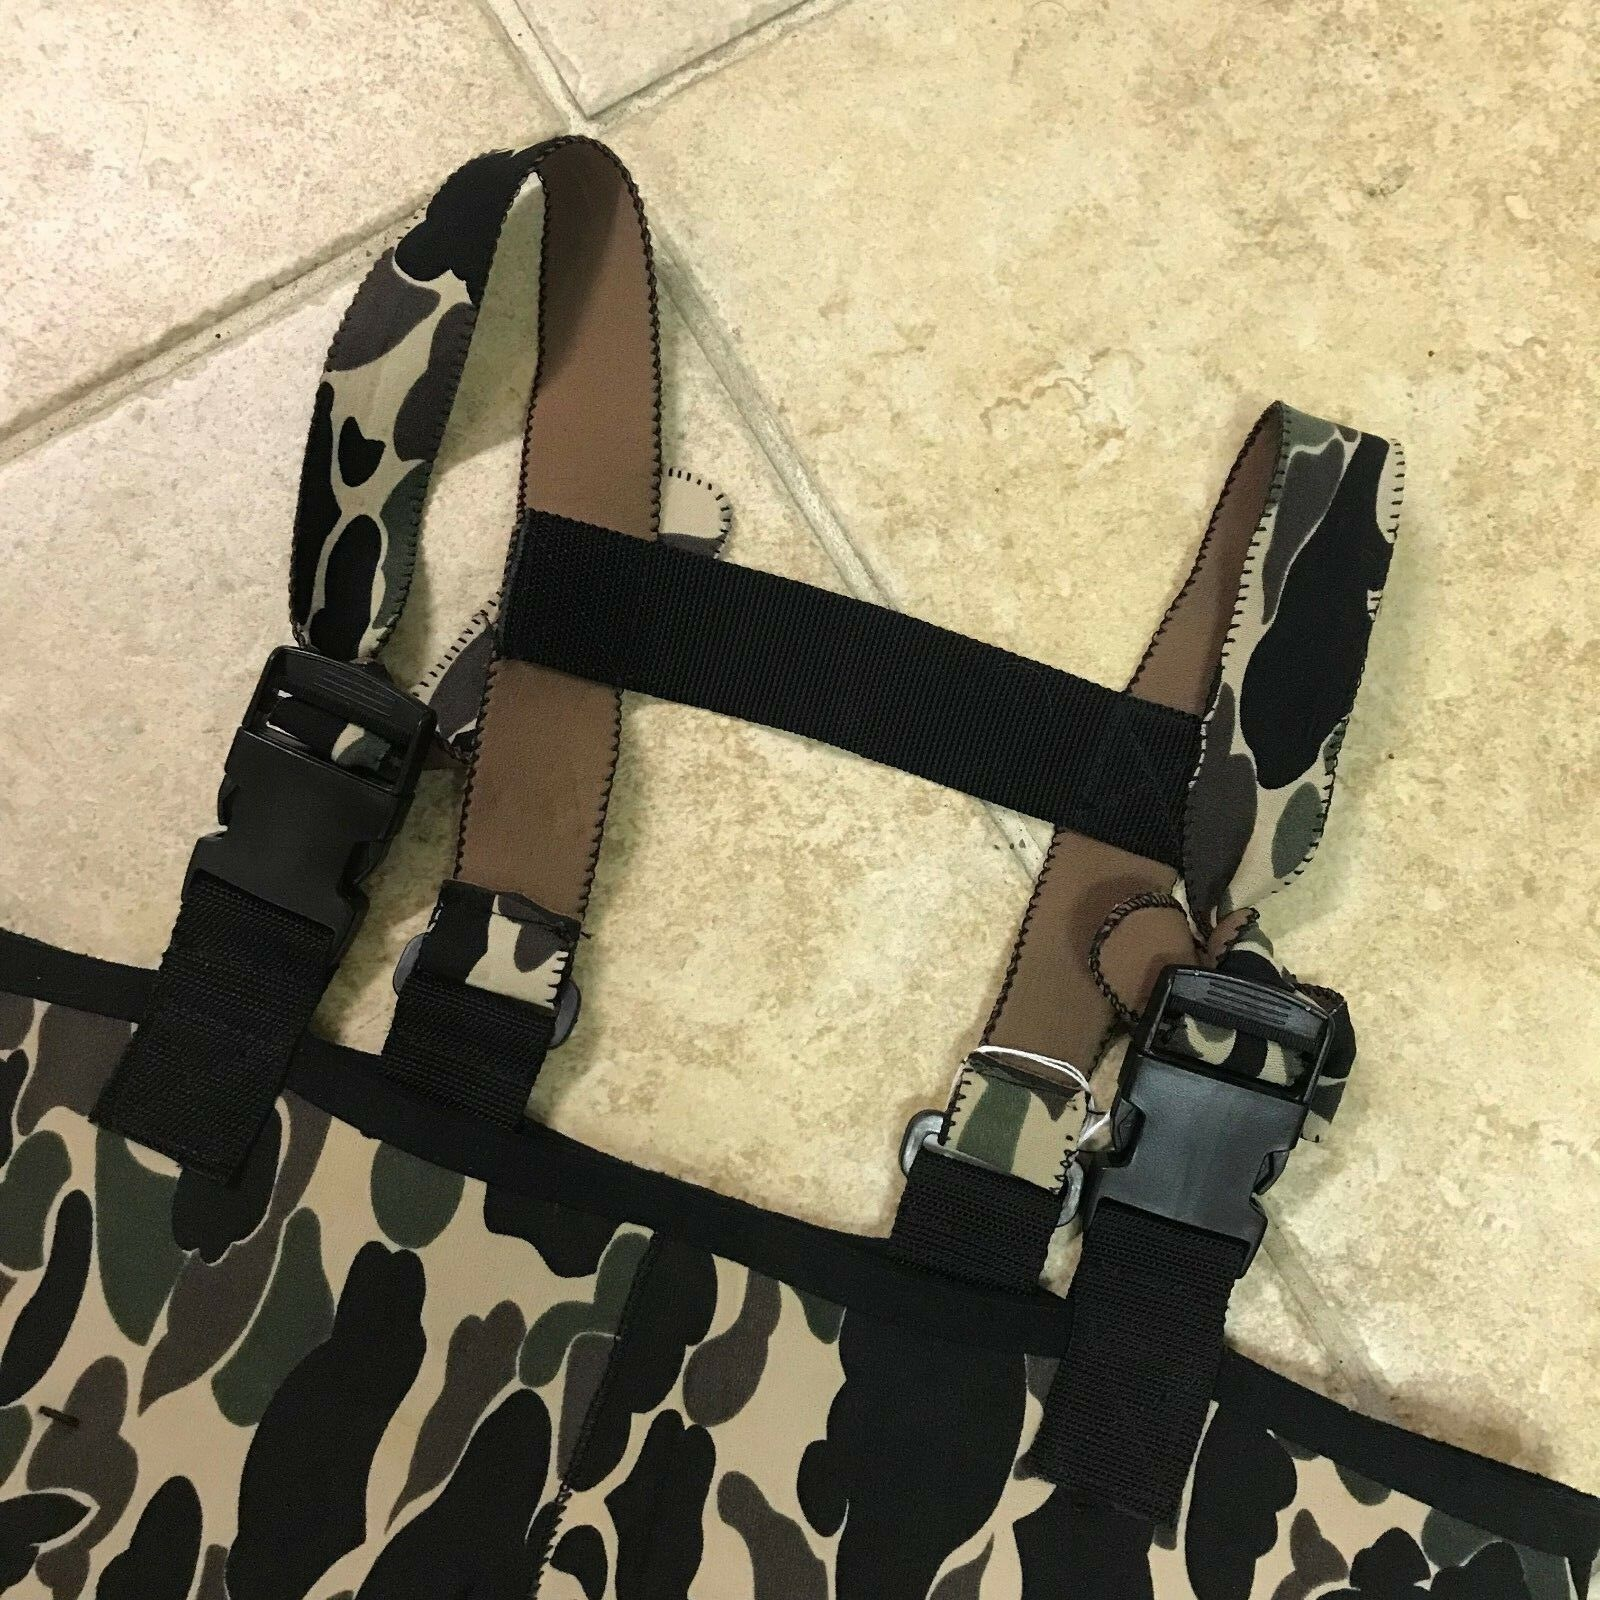 Camouflage Fishing Overalls W/ Suspenders & Footing  - 38x20 Tag Size: 38x20 - -  500 90035d